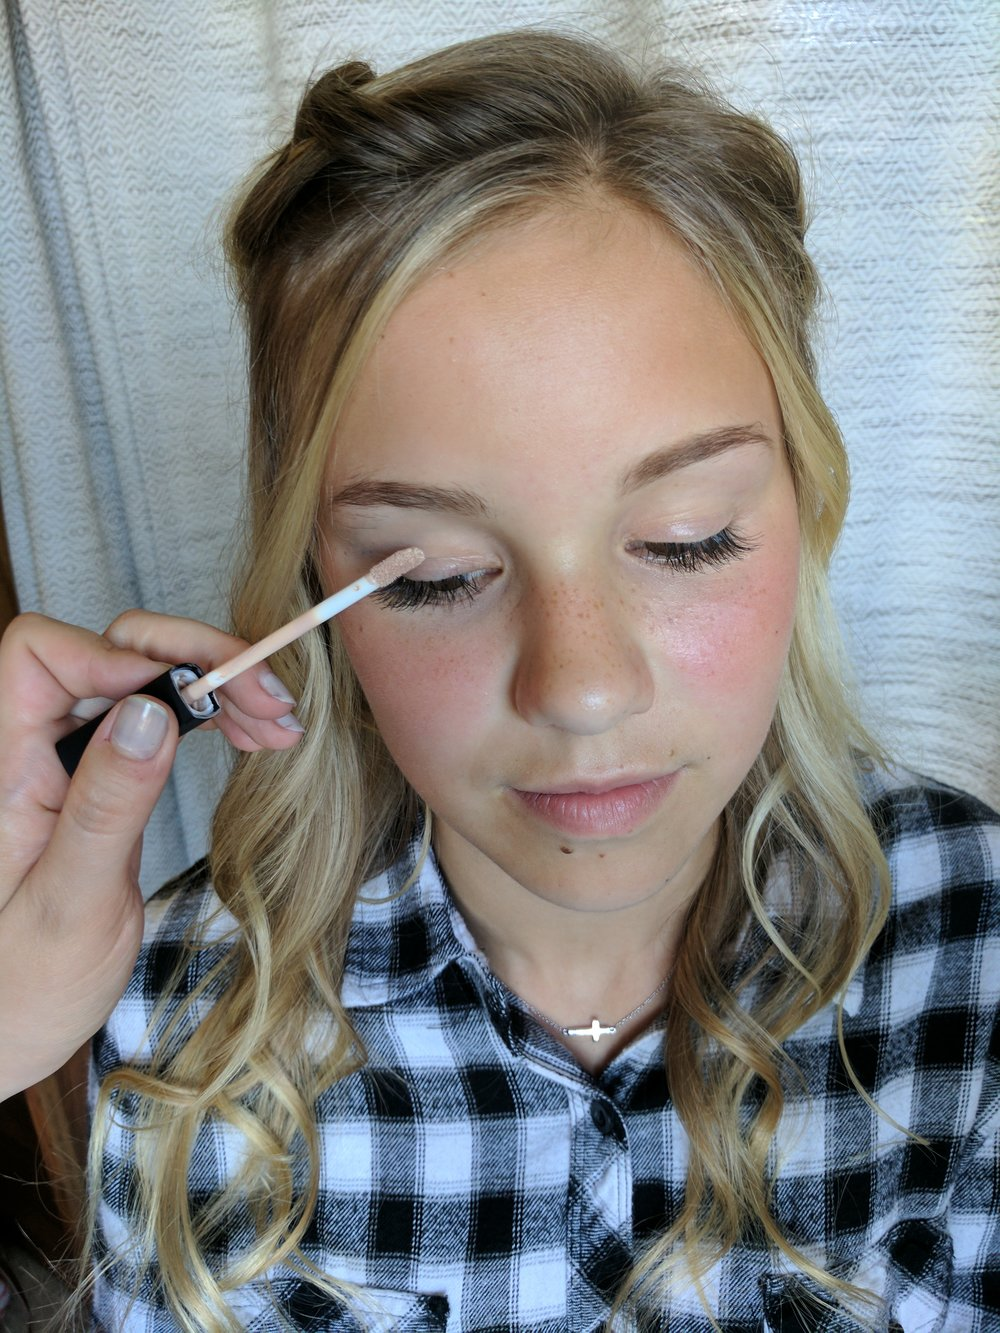 Step 2:  - Dab a little concealer onto the lids of your eyes to brighten and even your natural skin tone.